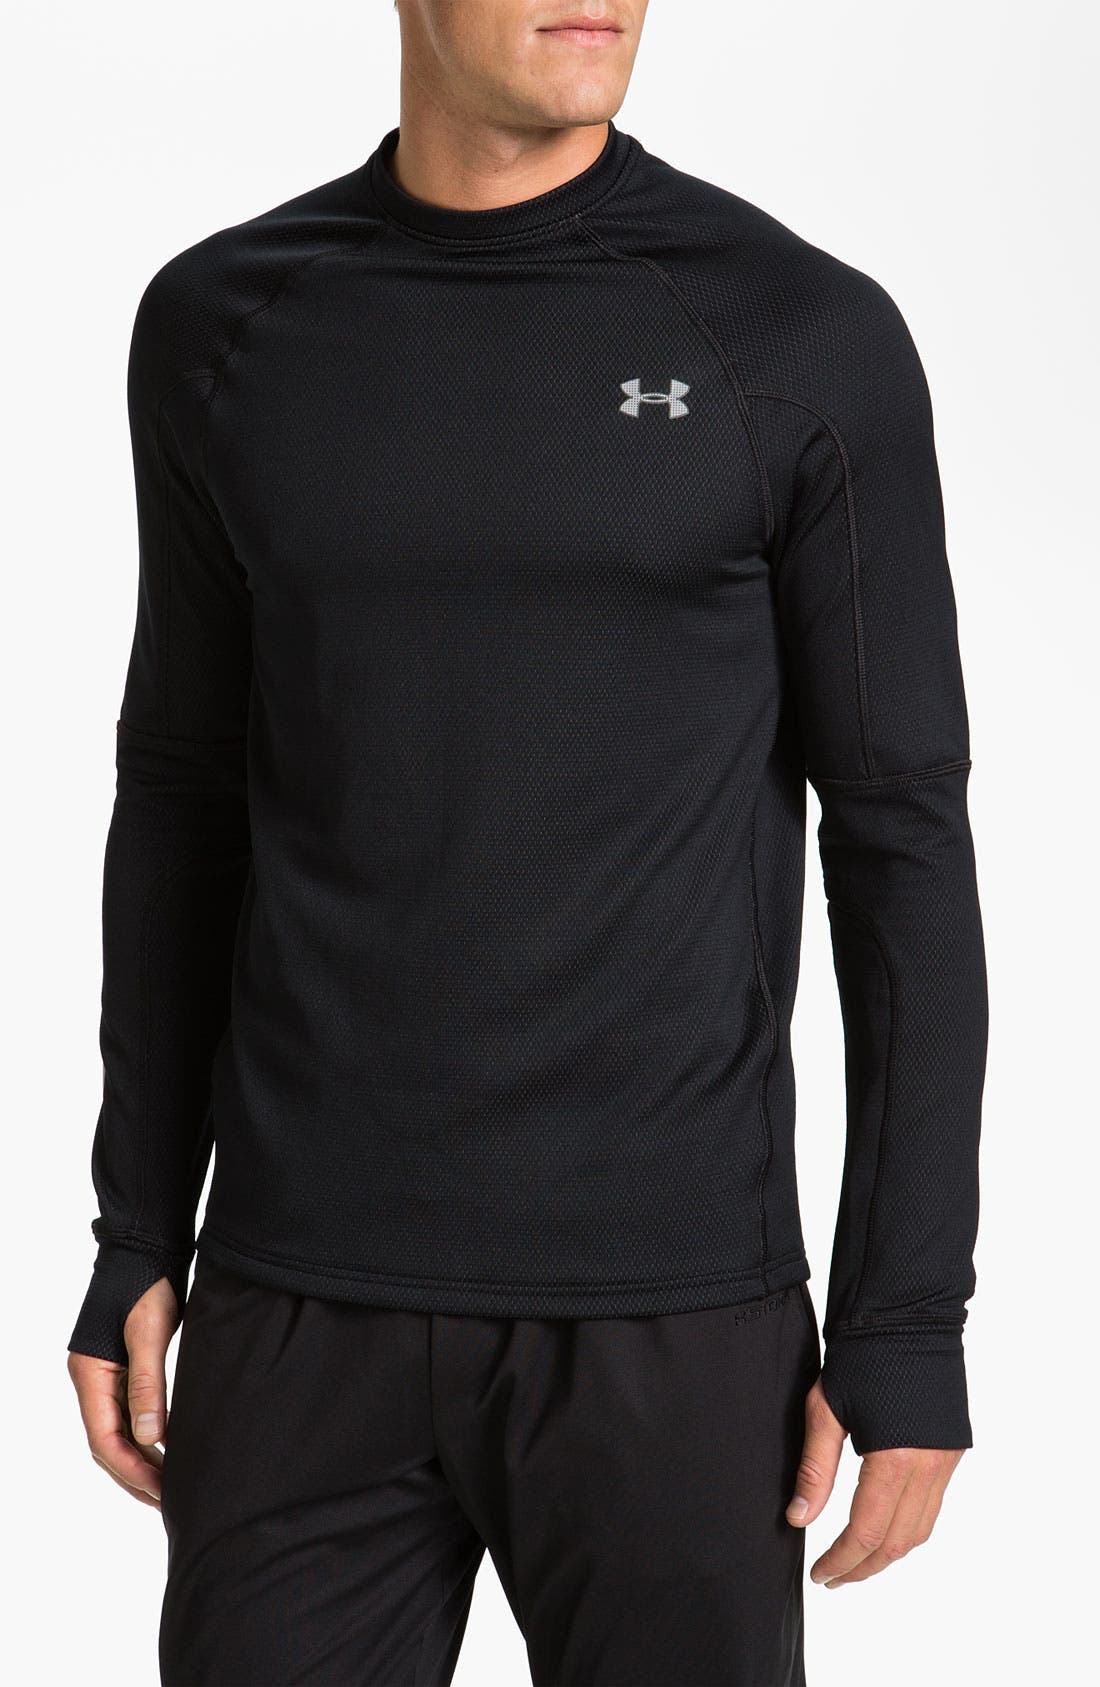 Main Image - Under Armour 'Thermo Run' Fitted Long Sleeve ColdGear® T-Shirt (Online Exclusive)